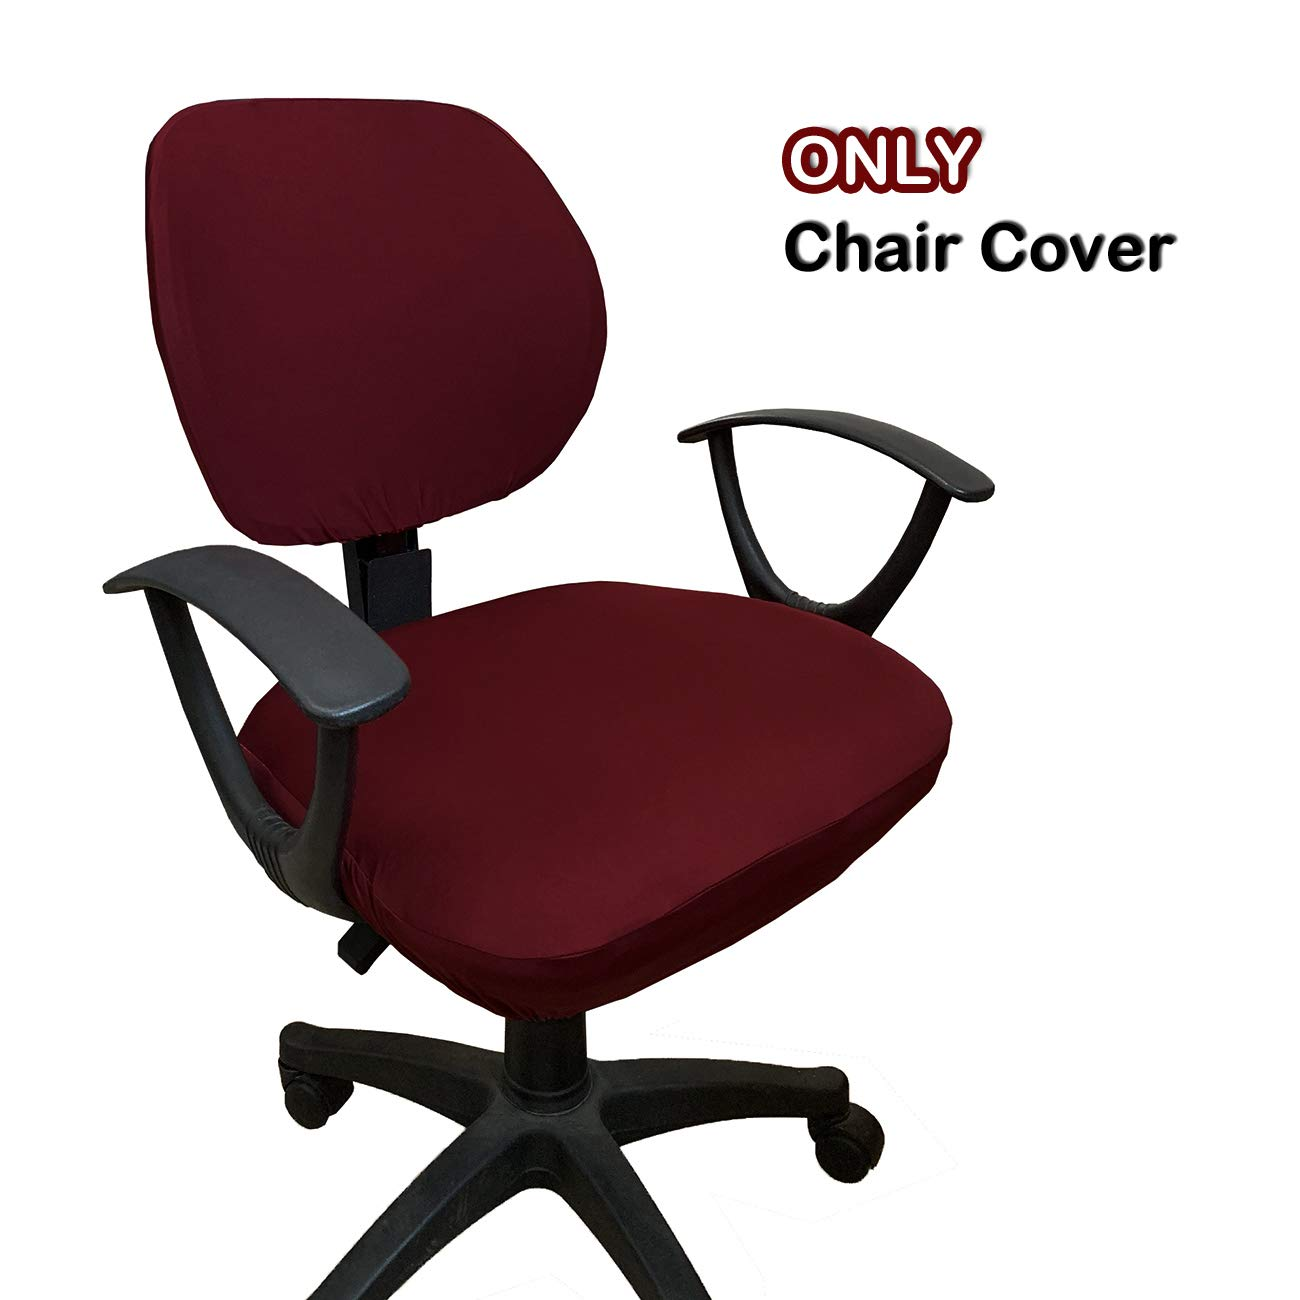 WOMACO Desk Chair Cover, Computer Office Chair Covers Removable Universal Chair Covers Stretch Rotating Chair Slipcover (Wine Red)